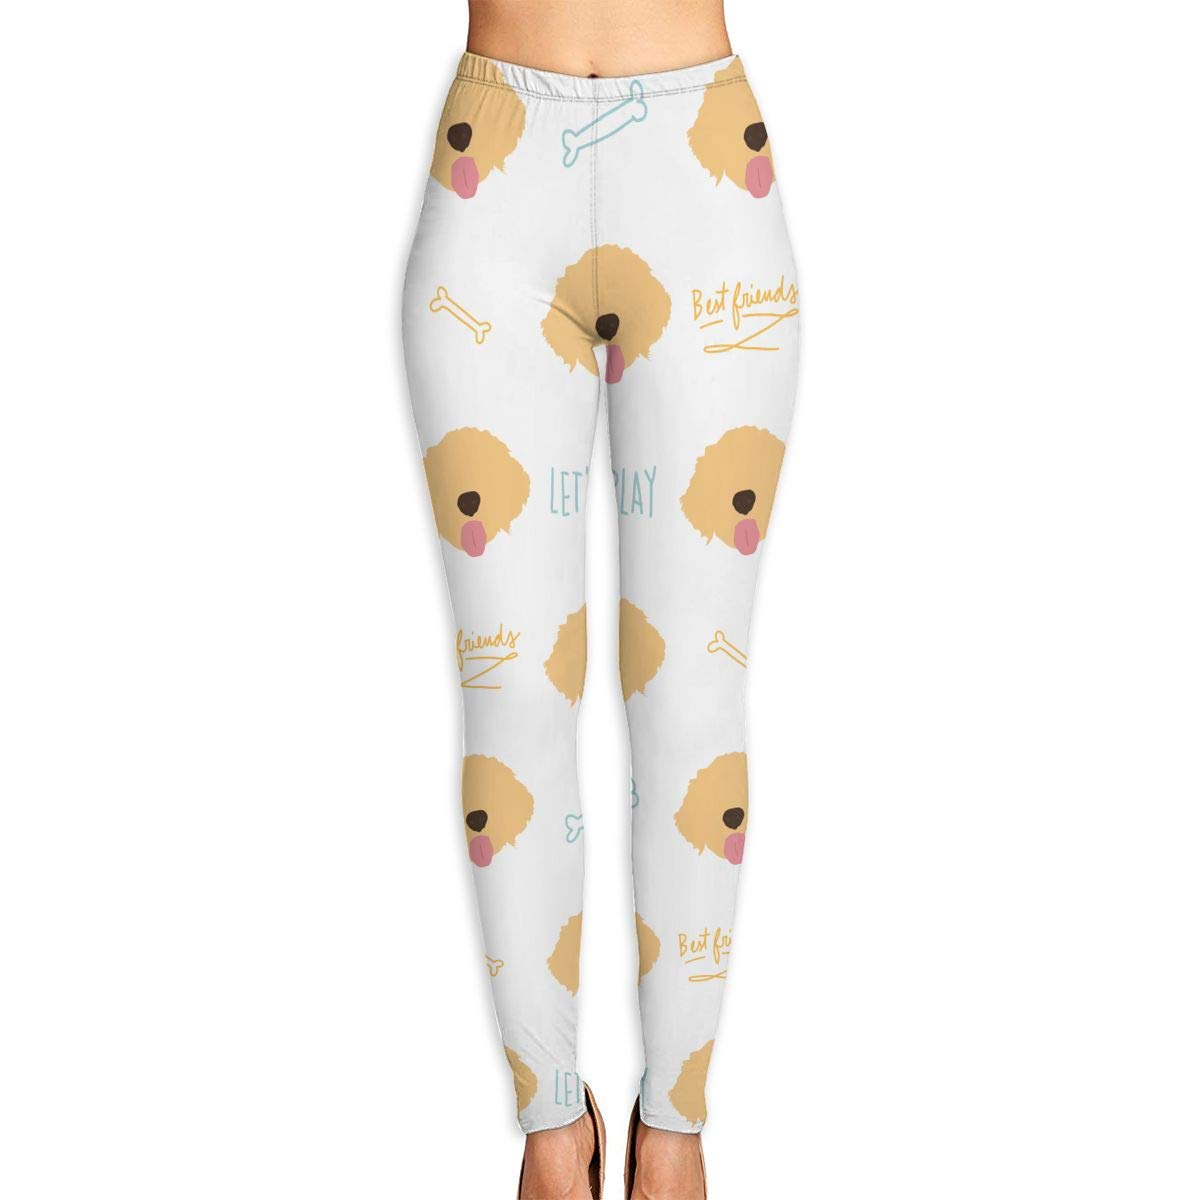 Amazon.com: Women¡¯s Golden Retriever Dog Lab Yoga Pants ...